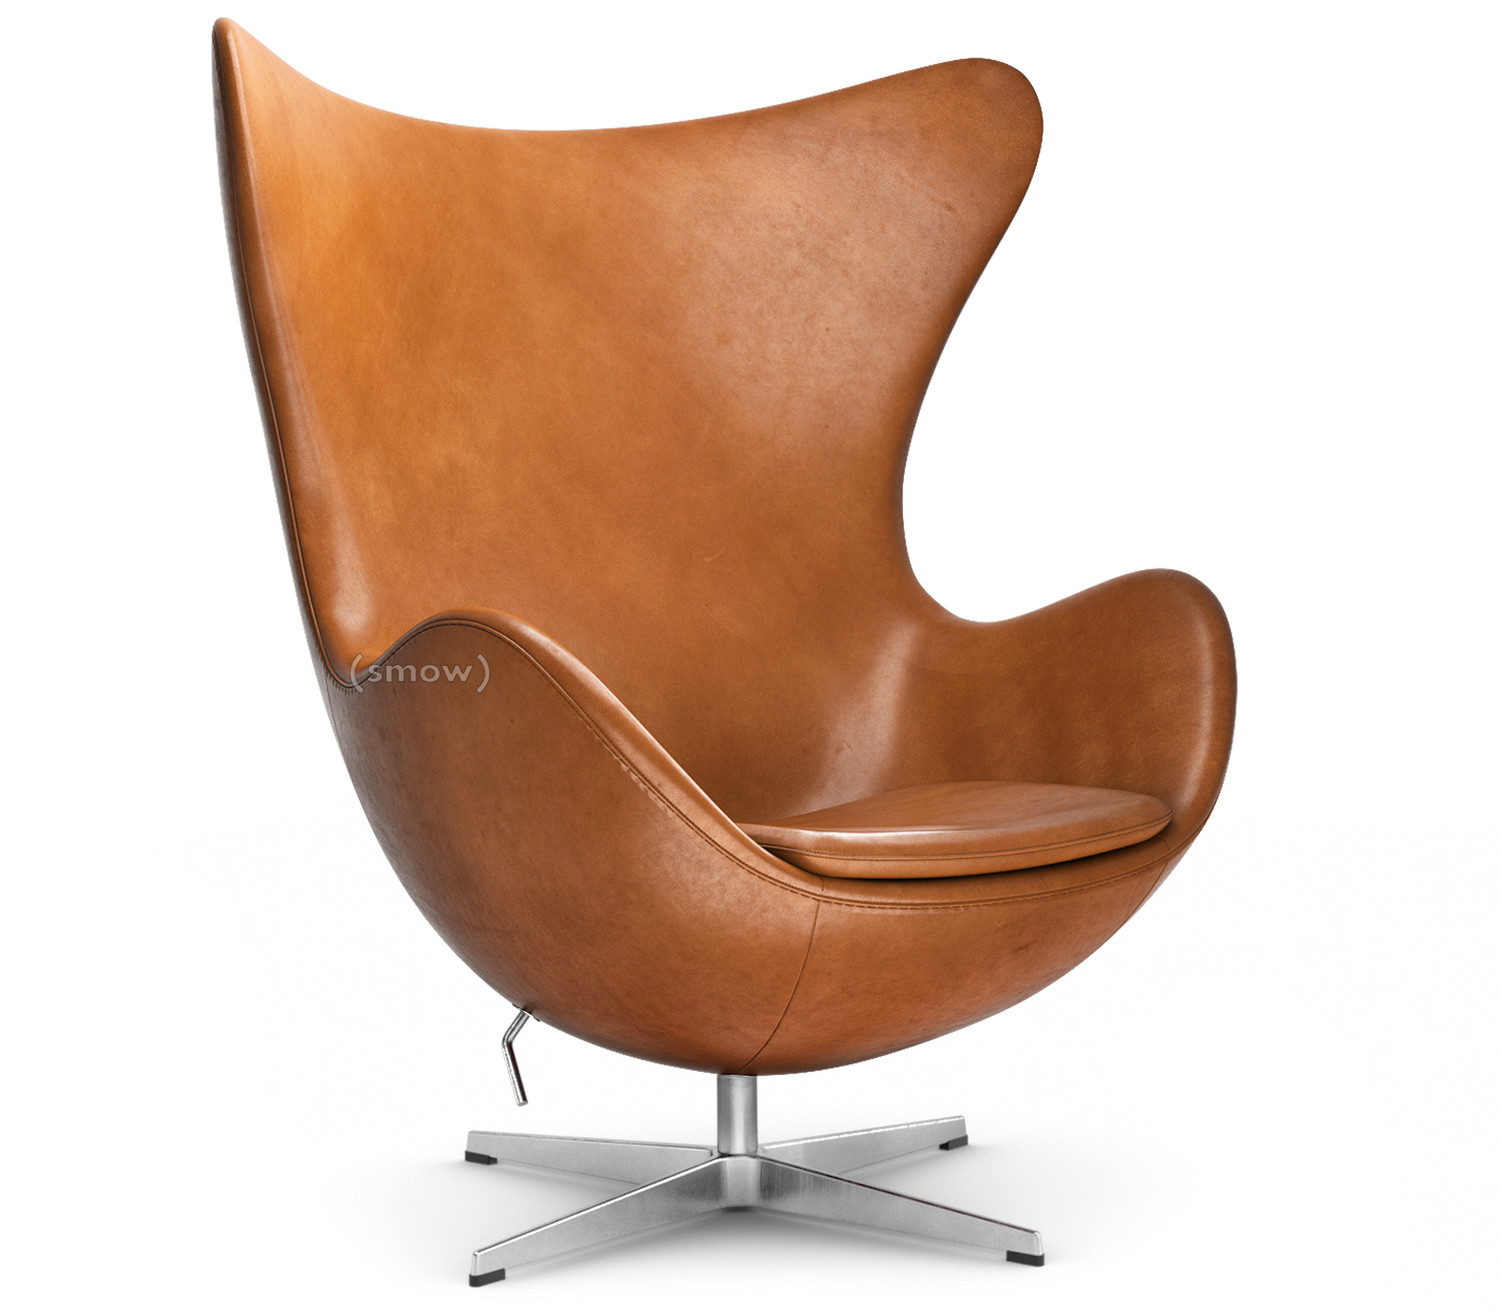 fritz hansen egg chair elegance leather walnut without. Black Bedroom Furniture Sets. Home Design Ideas